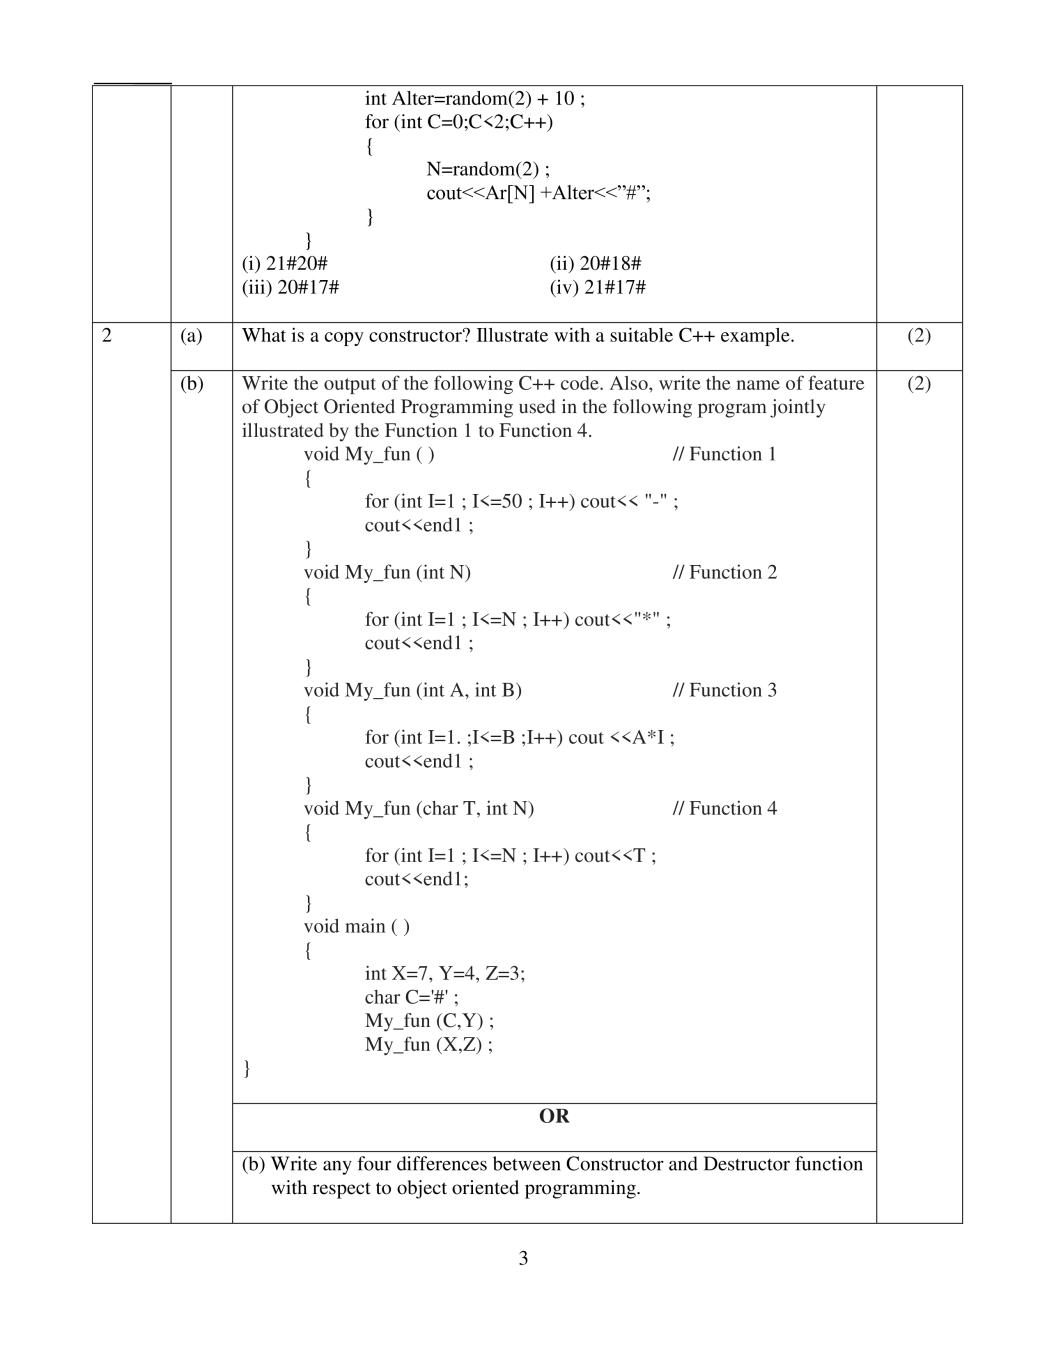 CBSE Sample Papers 2020 for Class 12 – Computer Science